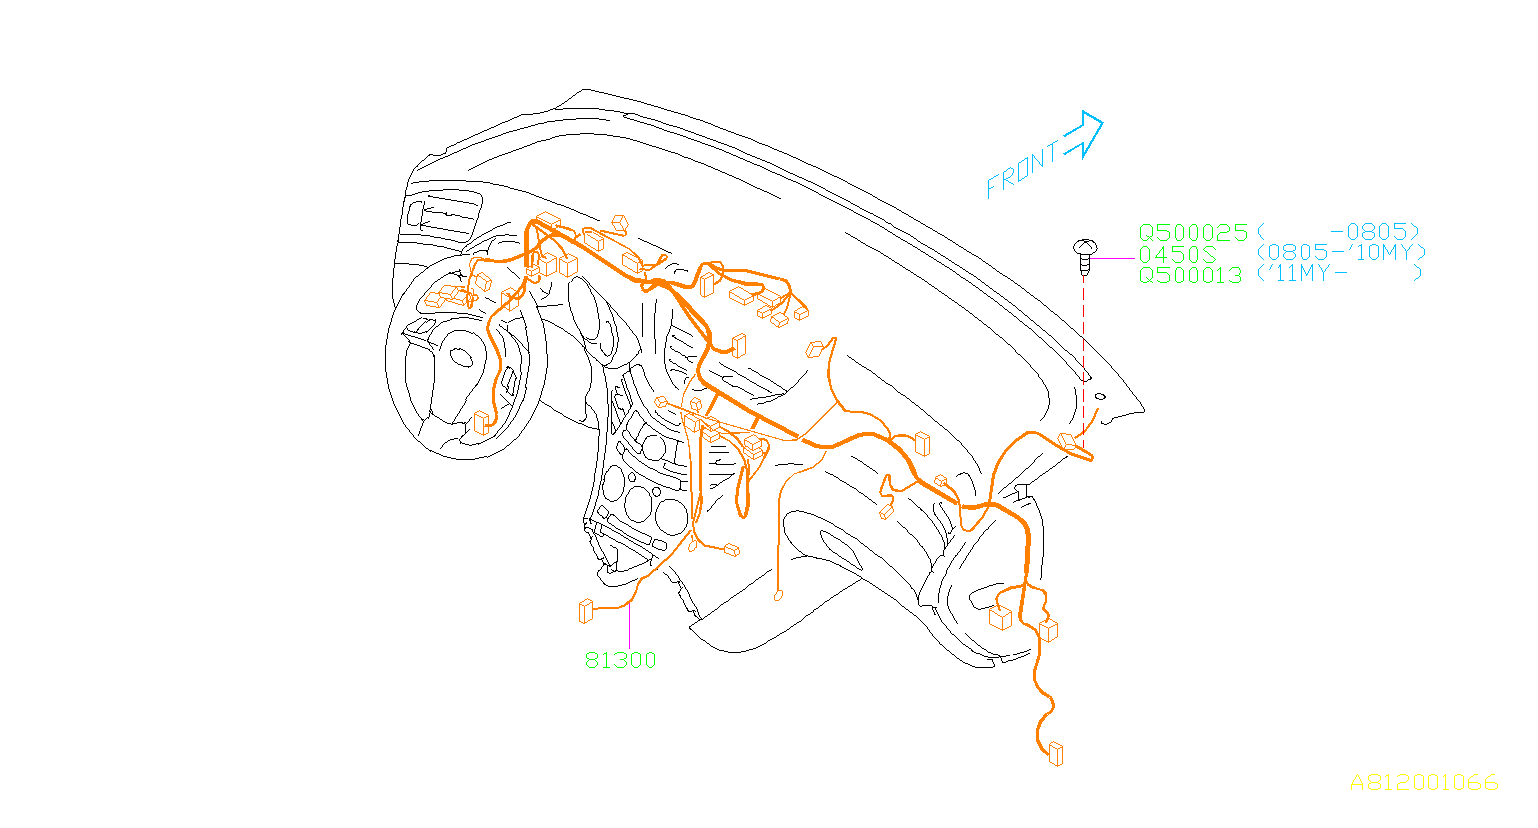 Subaru Tribeca Harness Instrument Panel  Wiring